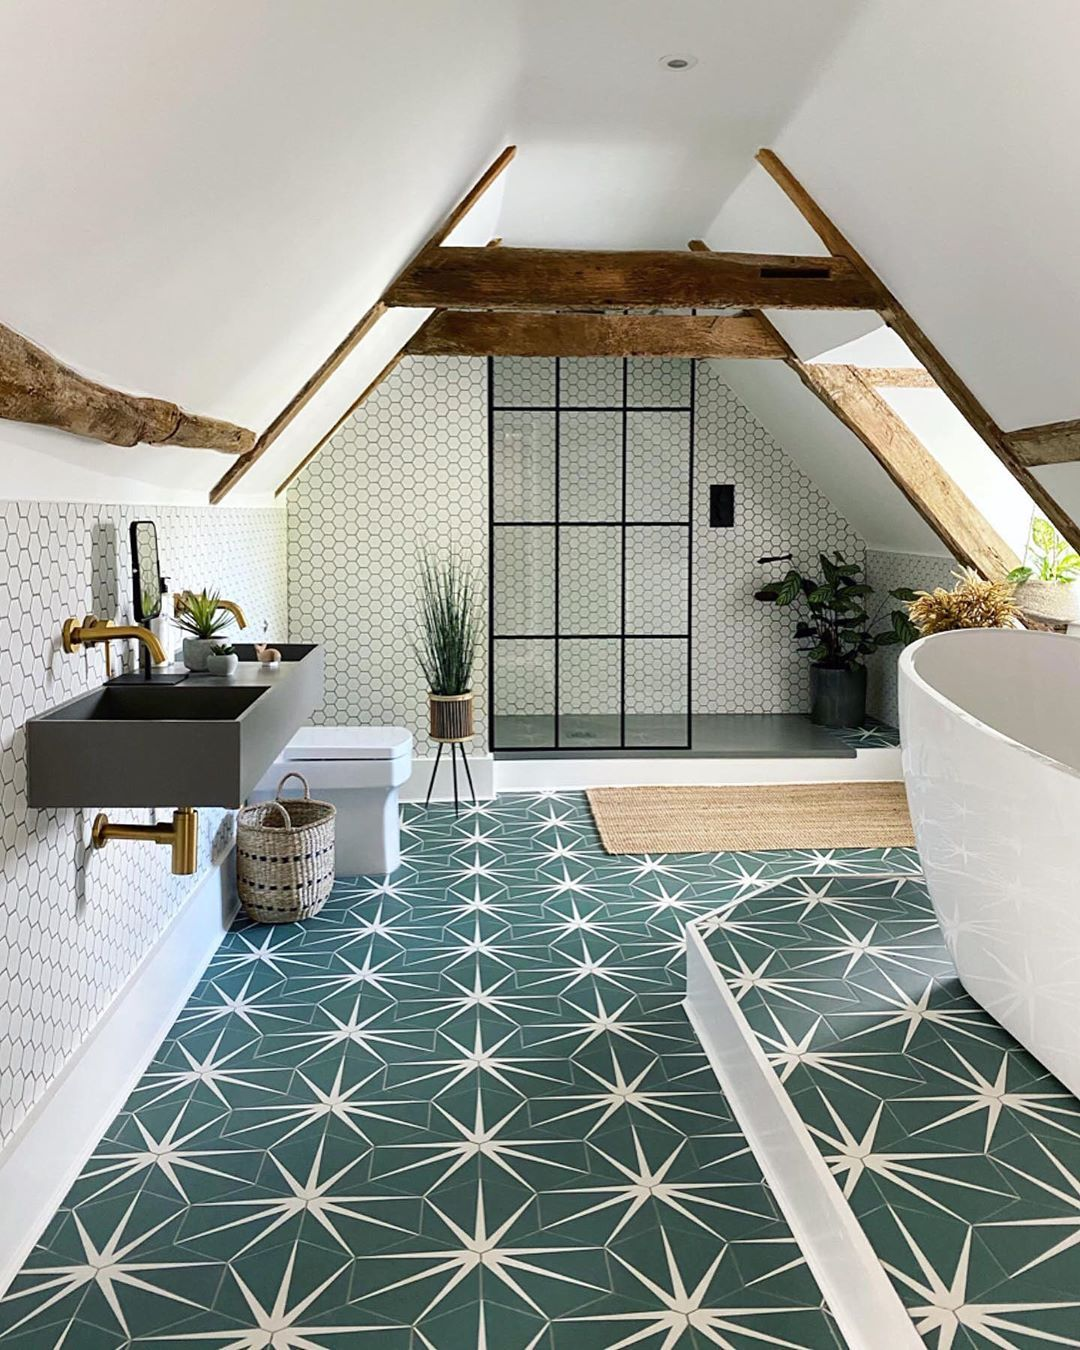 House Beautiful Uk On Instagram Loveyourspace A Super Stylish Bathroom Loft Extension From Renovating The Hou In 2020 Loft Bathroom Bold Bathroom Tile Tile Trends